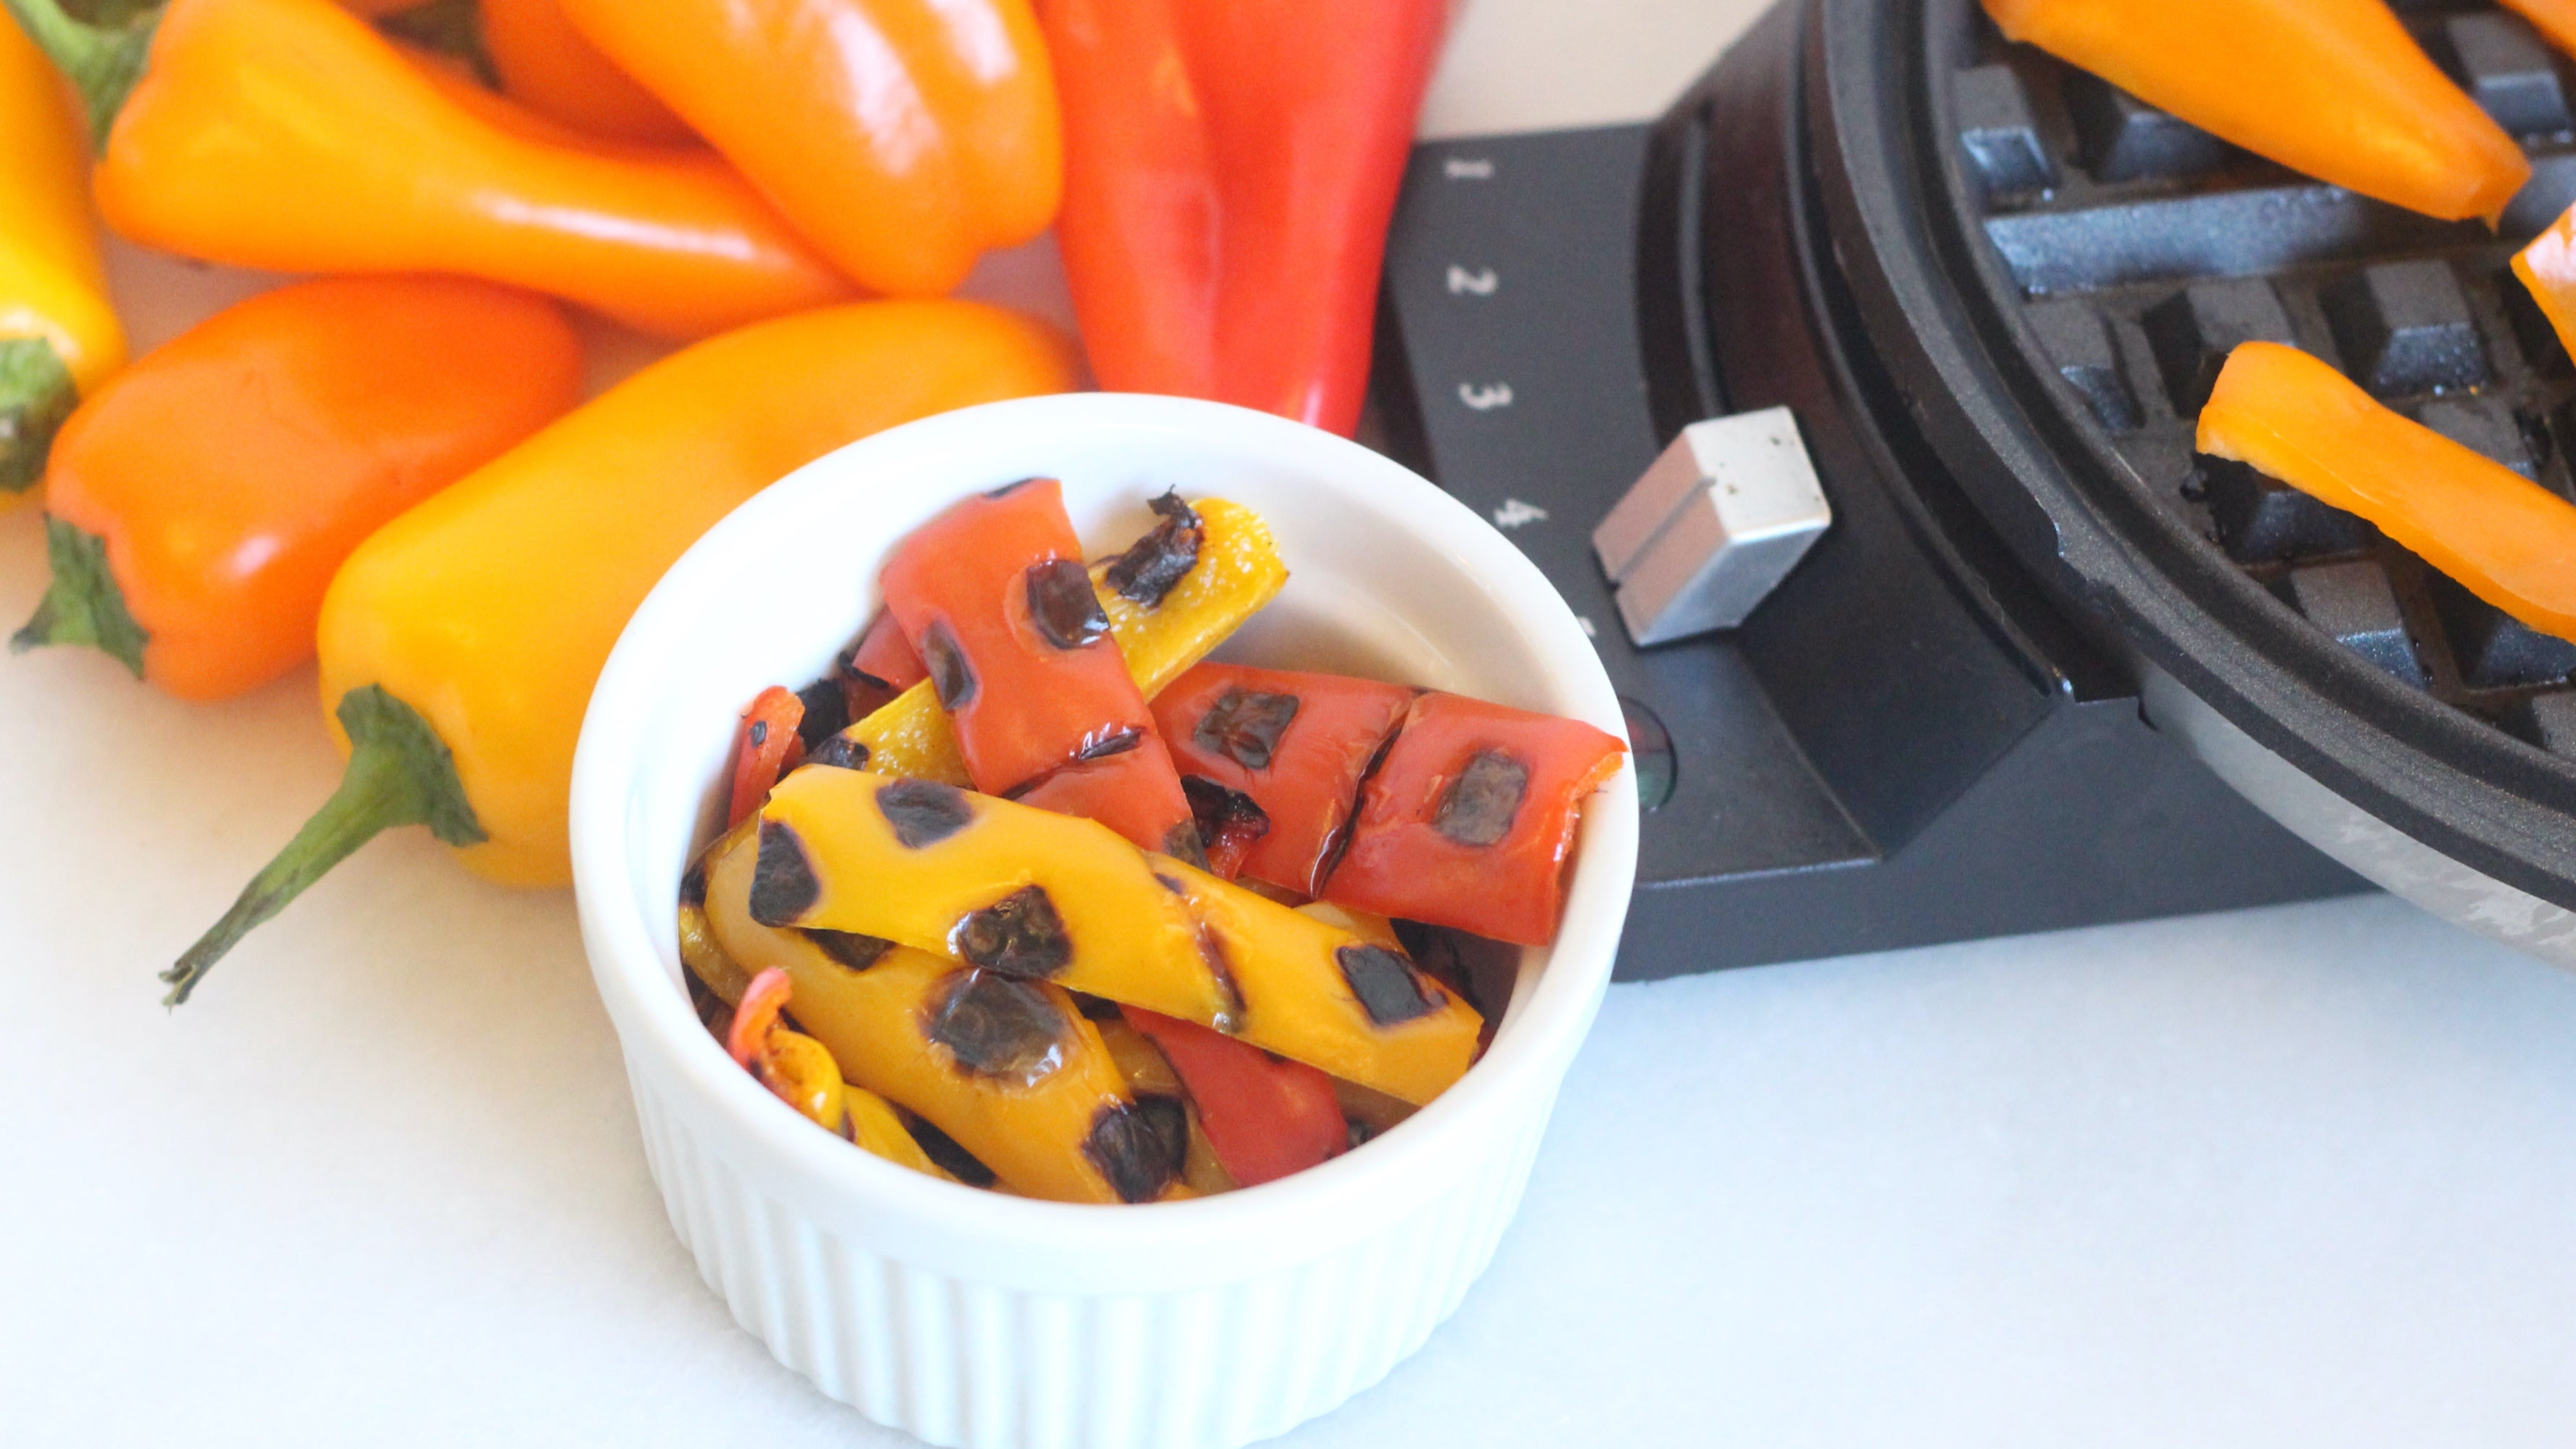 Blister Sizzling Strips Of Bell Pepper In Your Waffle Maker